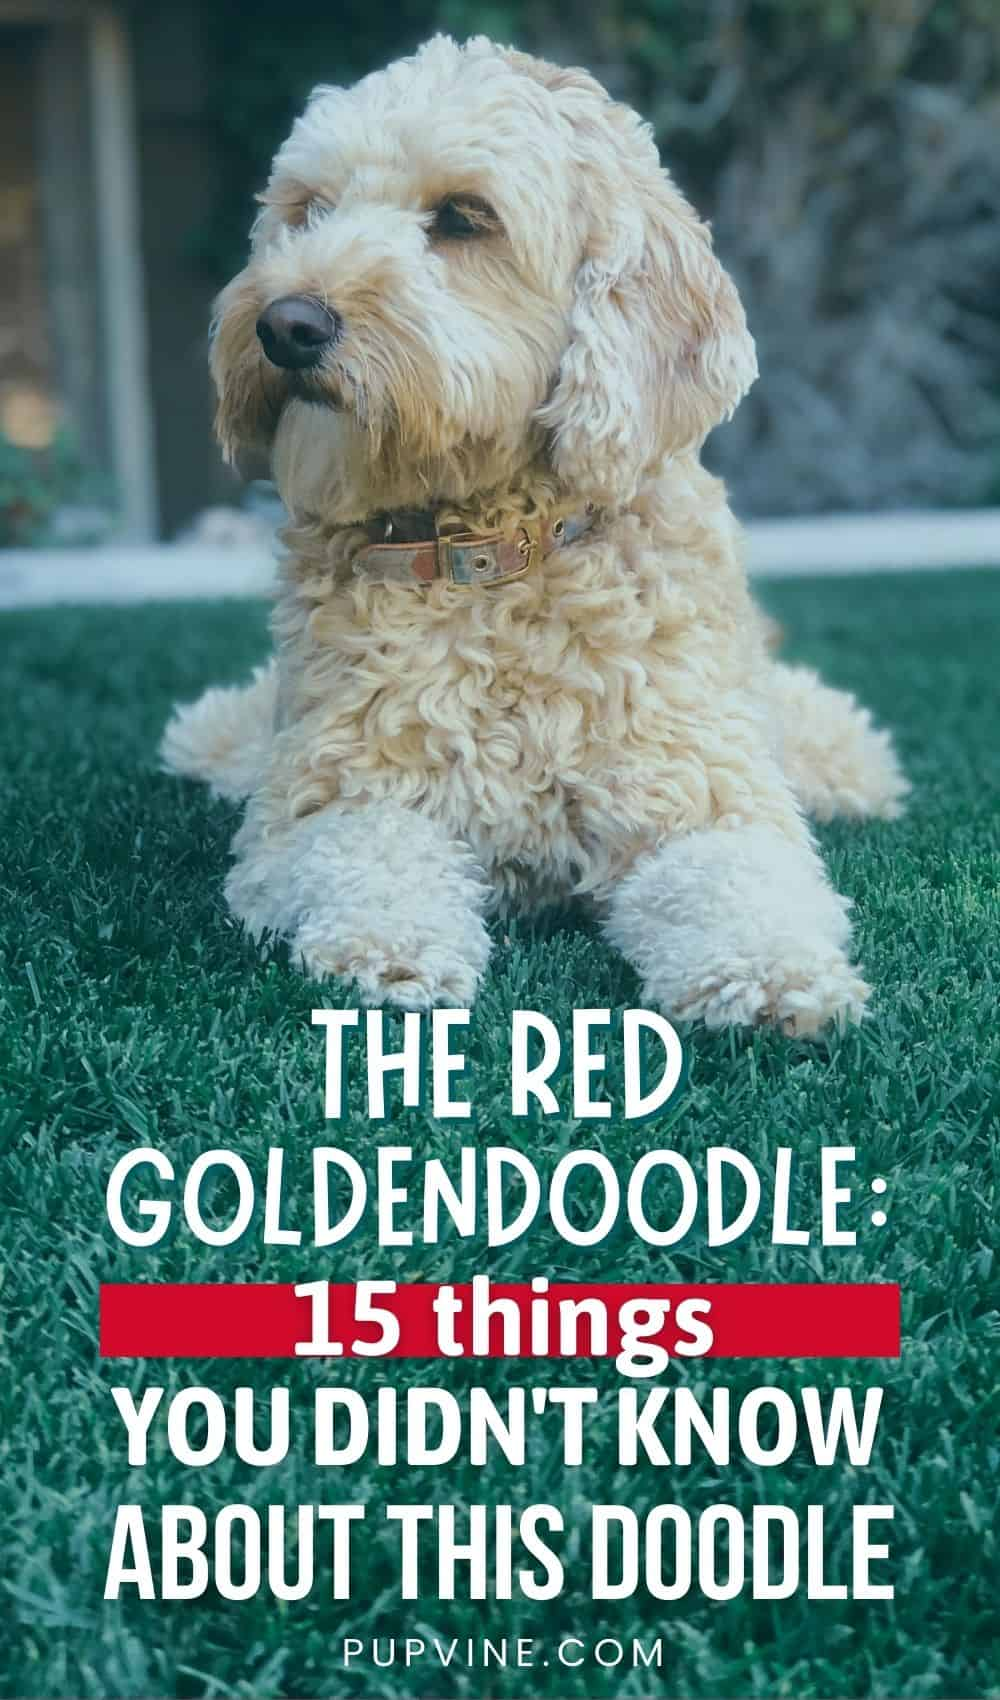 The Red Goldendoodle 15 Things You Didn't Know About This Doodle